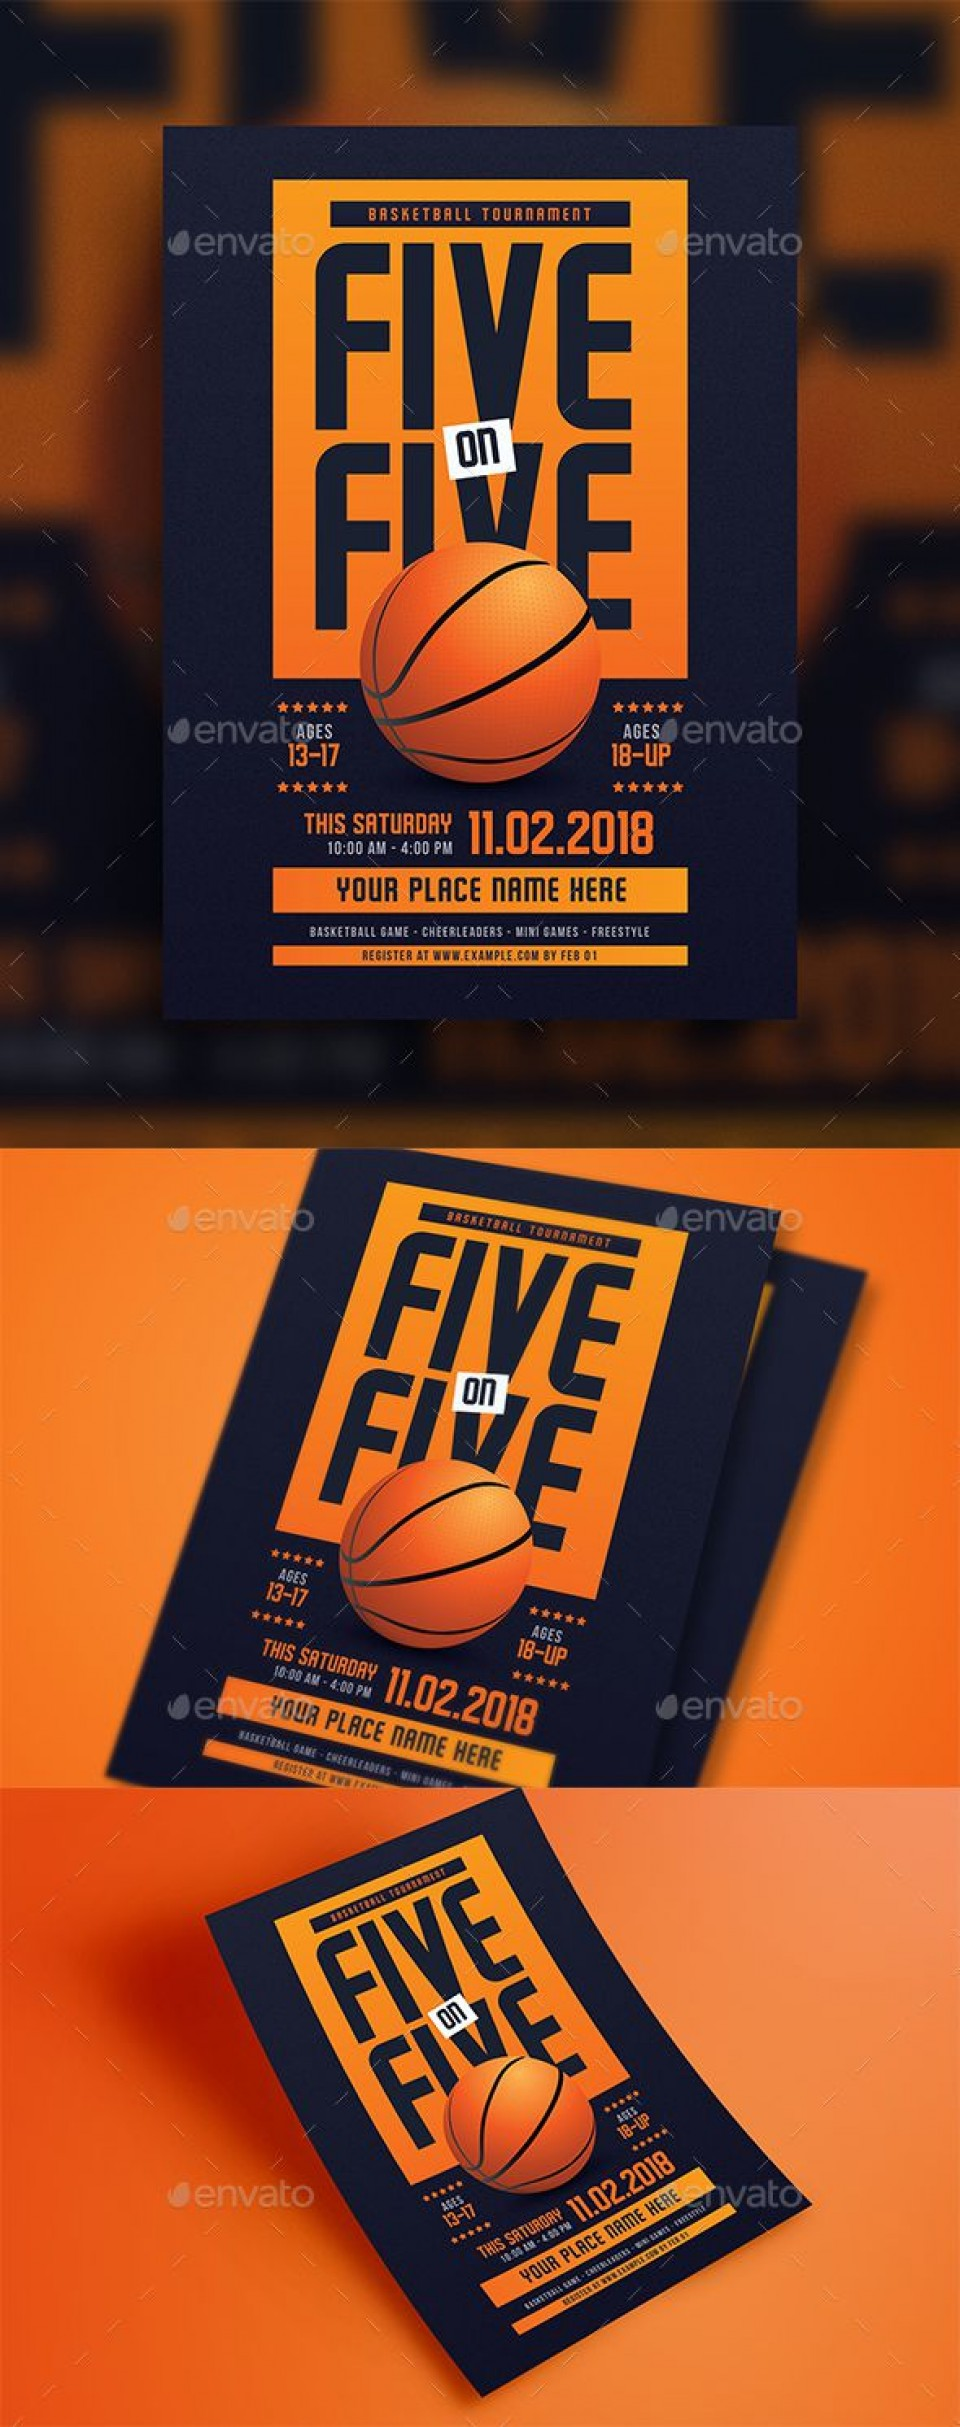 009 Striking Basketball Tournament Flyer Template Highest Quality  3 On Free960